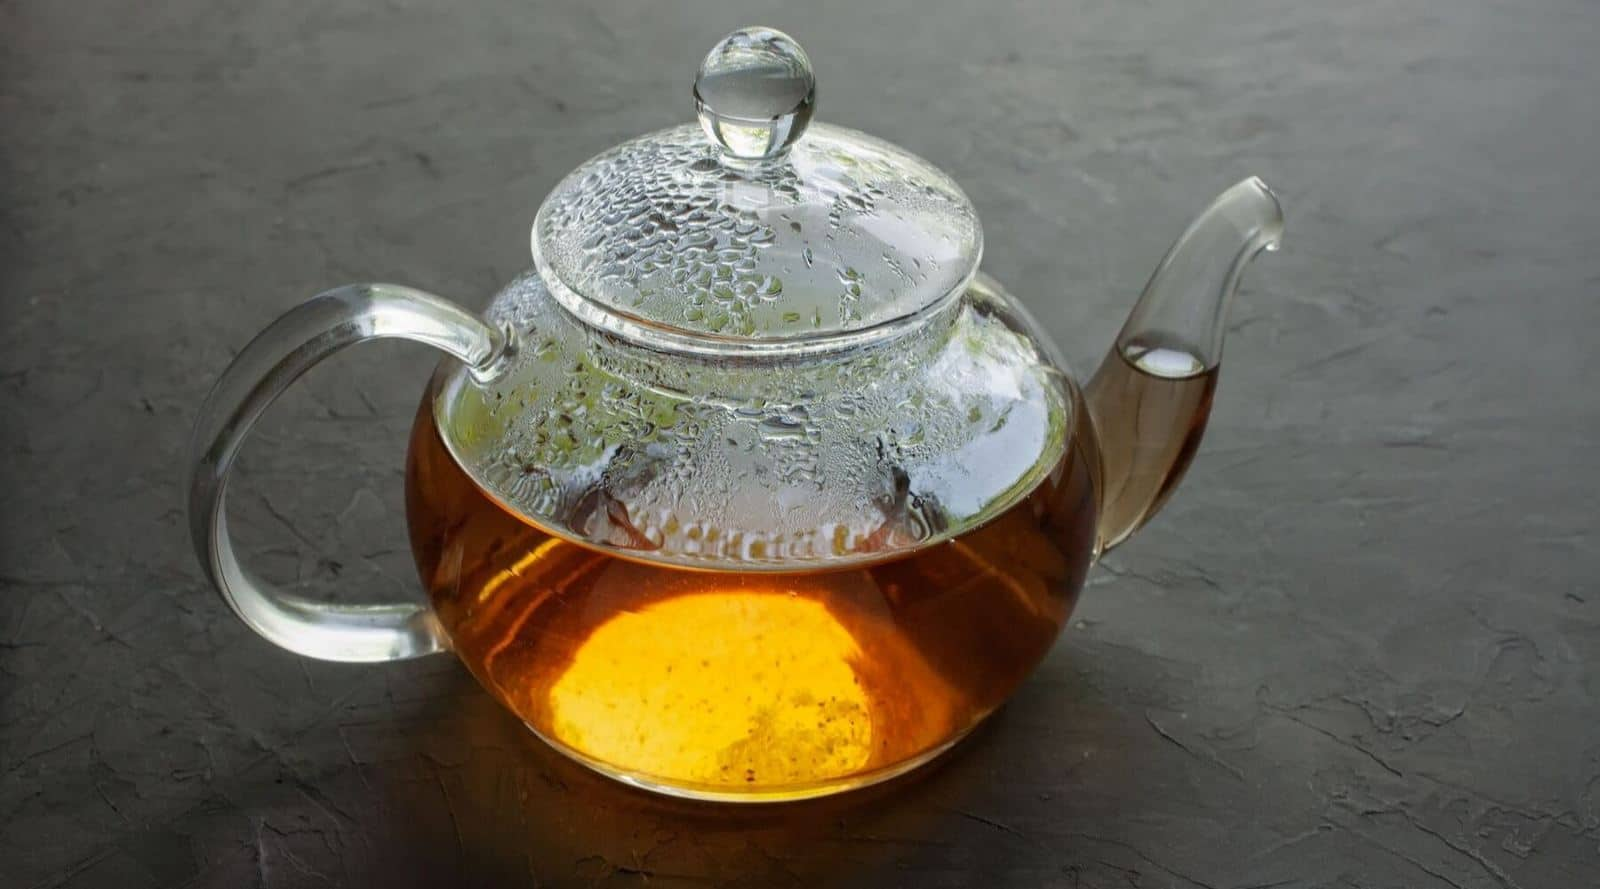 benefits and and drawbacks of using a glass teapot